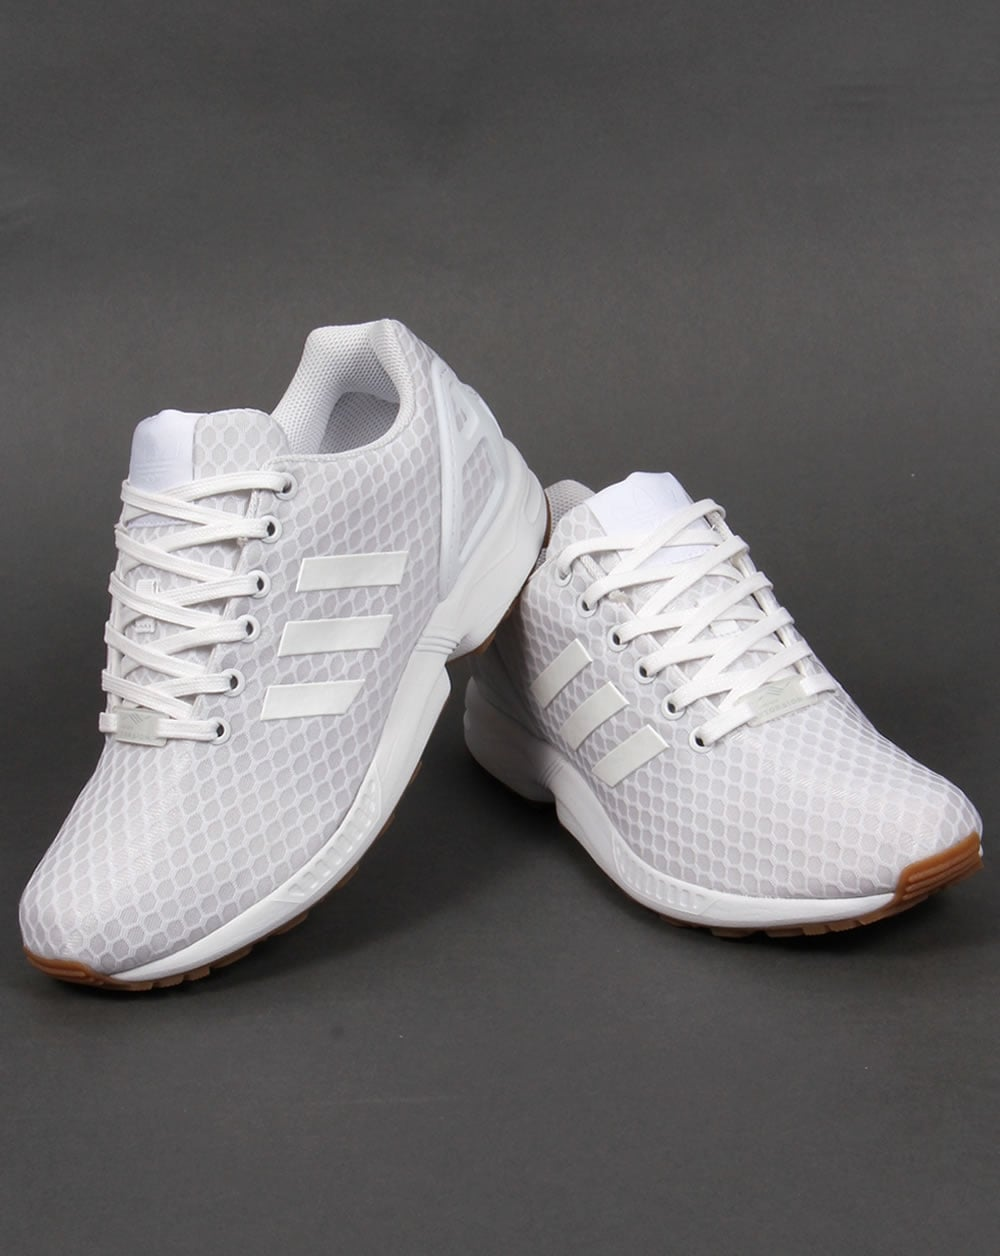 timeless design 4183a 7179f Adidas ZX Flux Trainers White/White/Gum